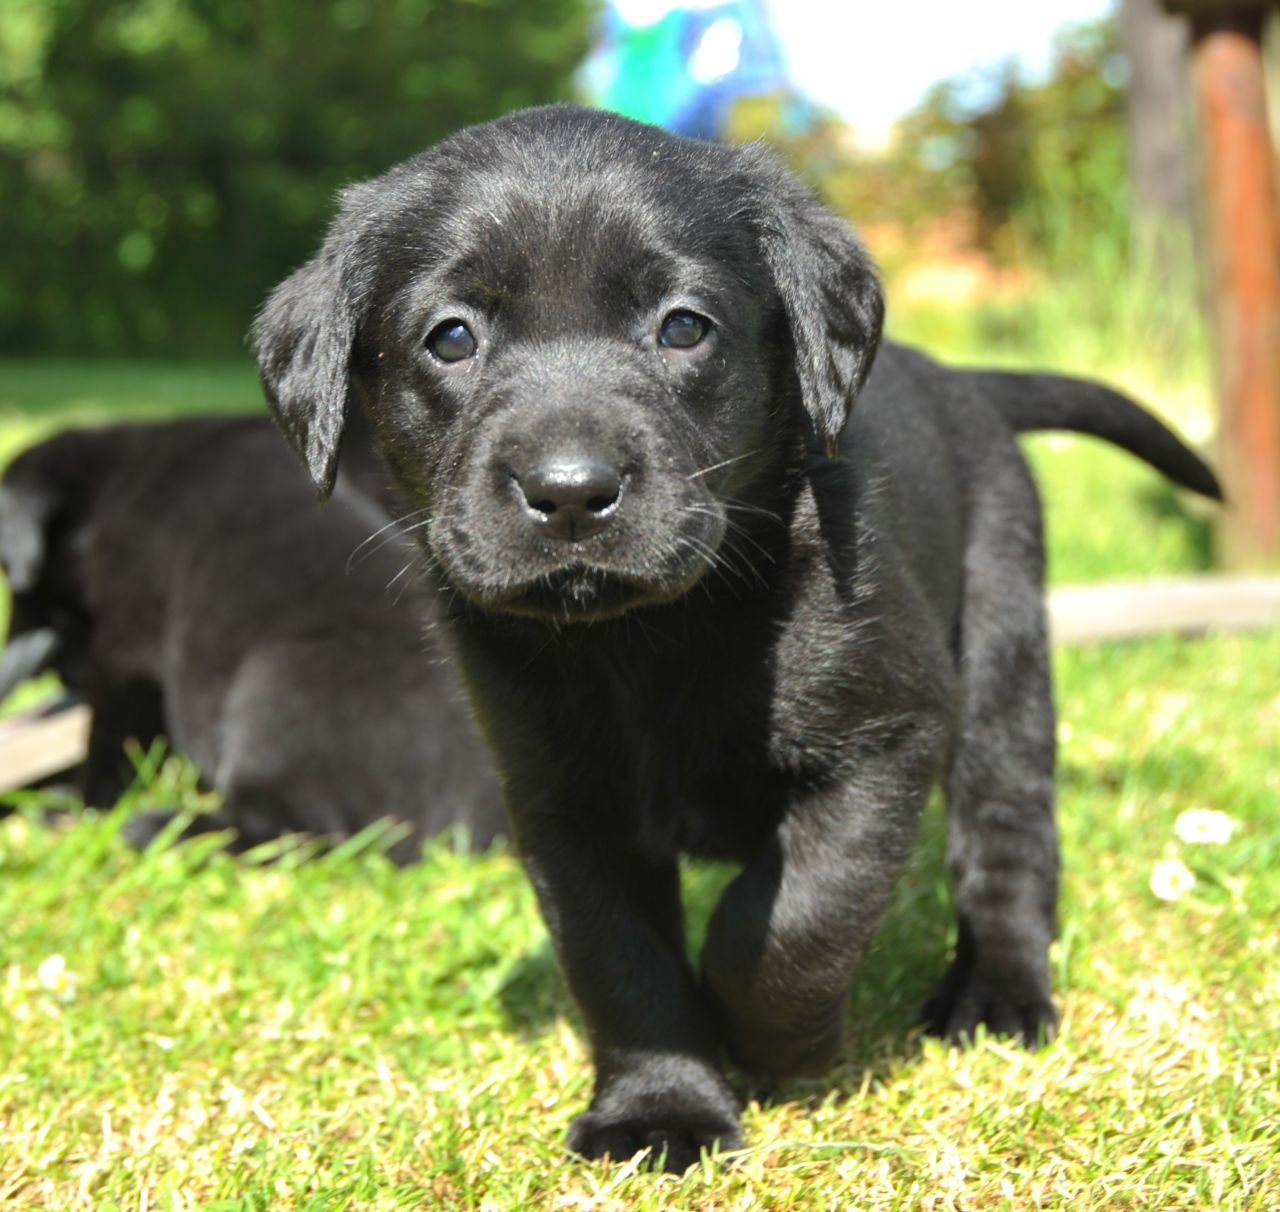 Black Lab Pups For Sale Rugby Warwickshire Pets4homes 5 Adorable Black Labrador Retriever Puppies In T In 2020 Lab Puppies Black Labrador Retriever Labrador Retriever